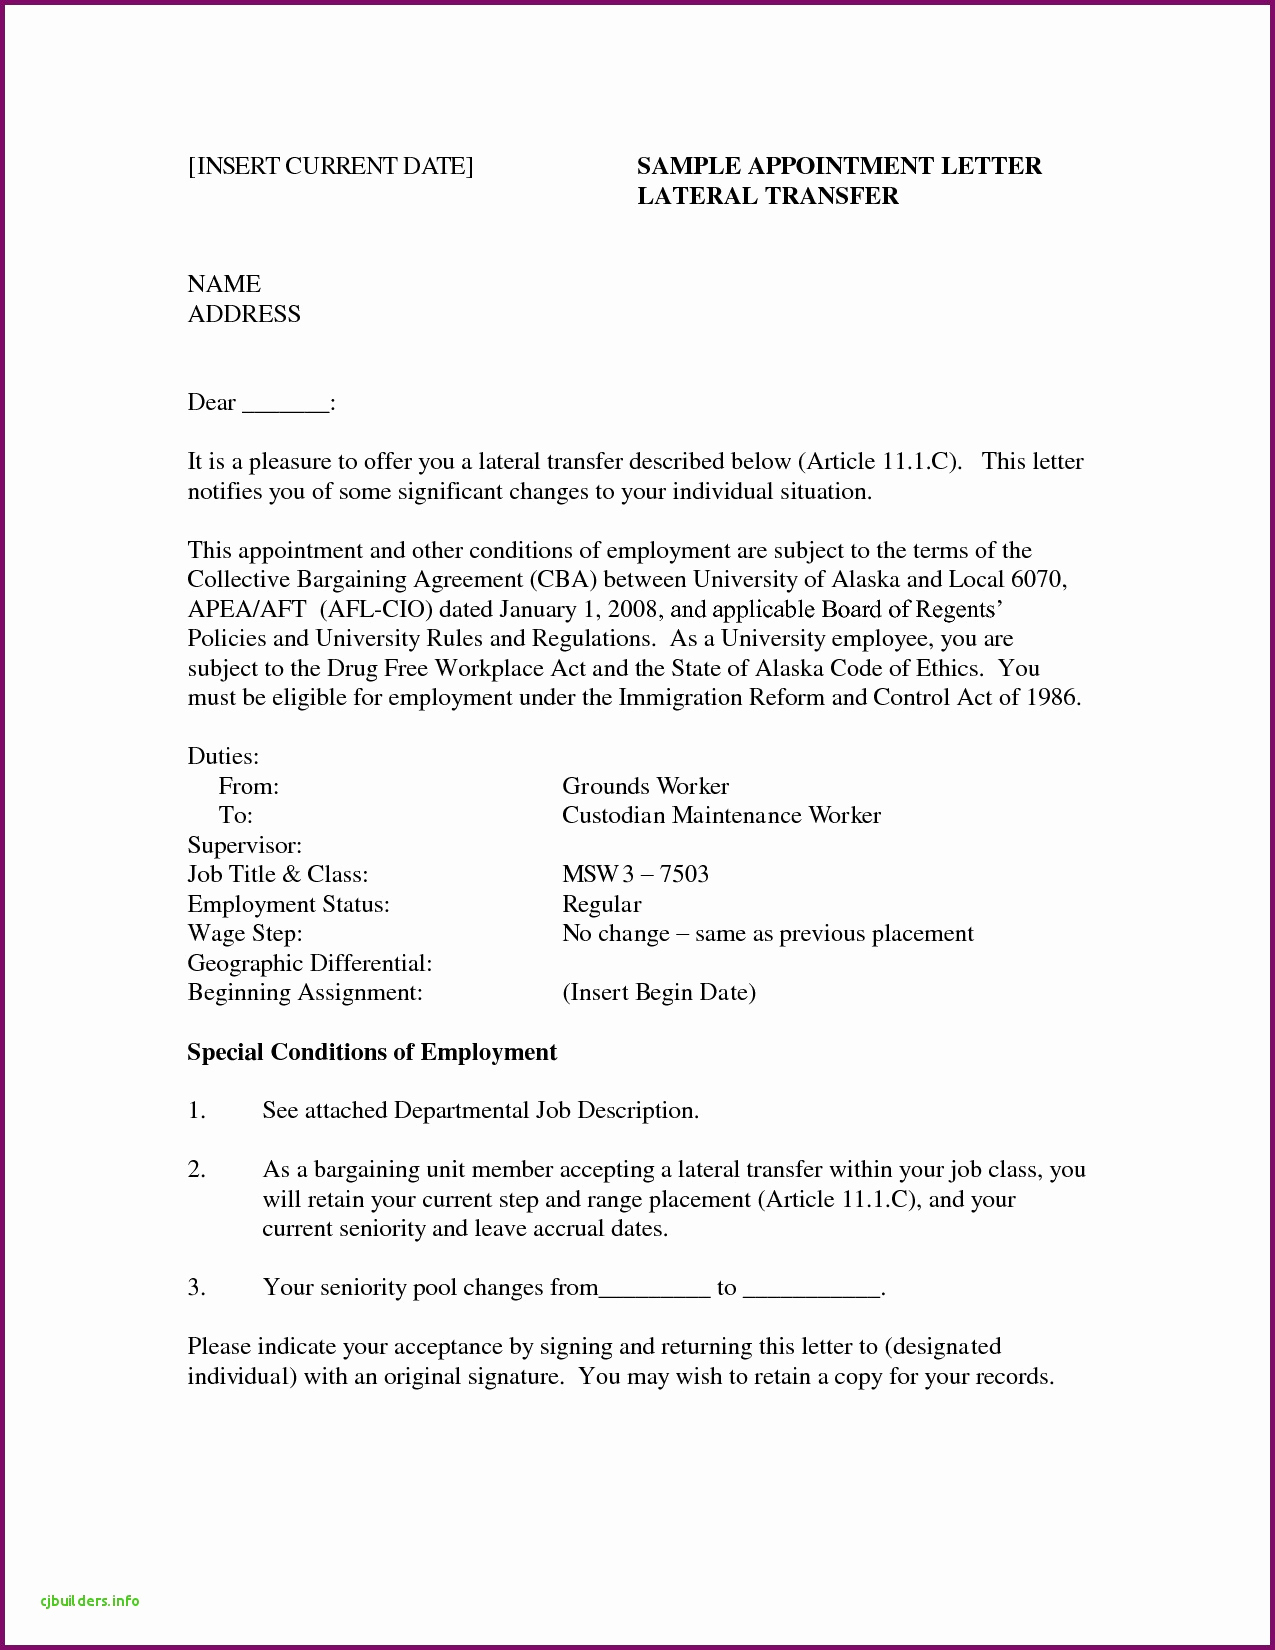 Counter Offer Letter Template - 20 Salary Counter Fer Letter Sample